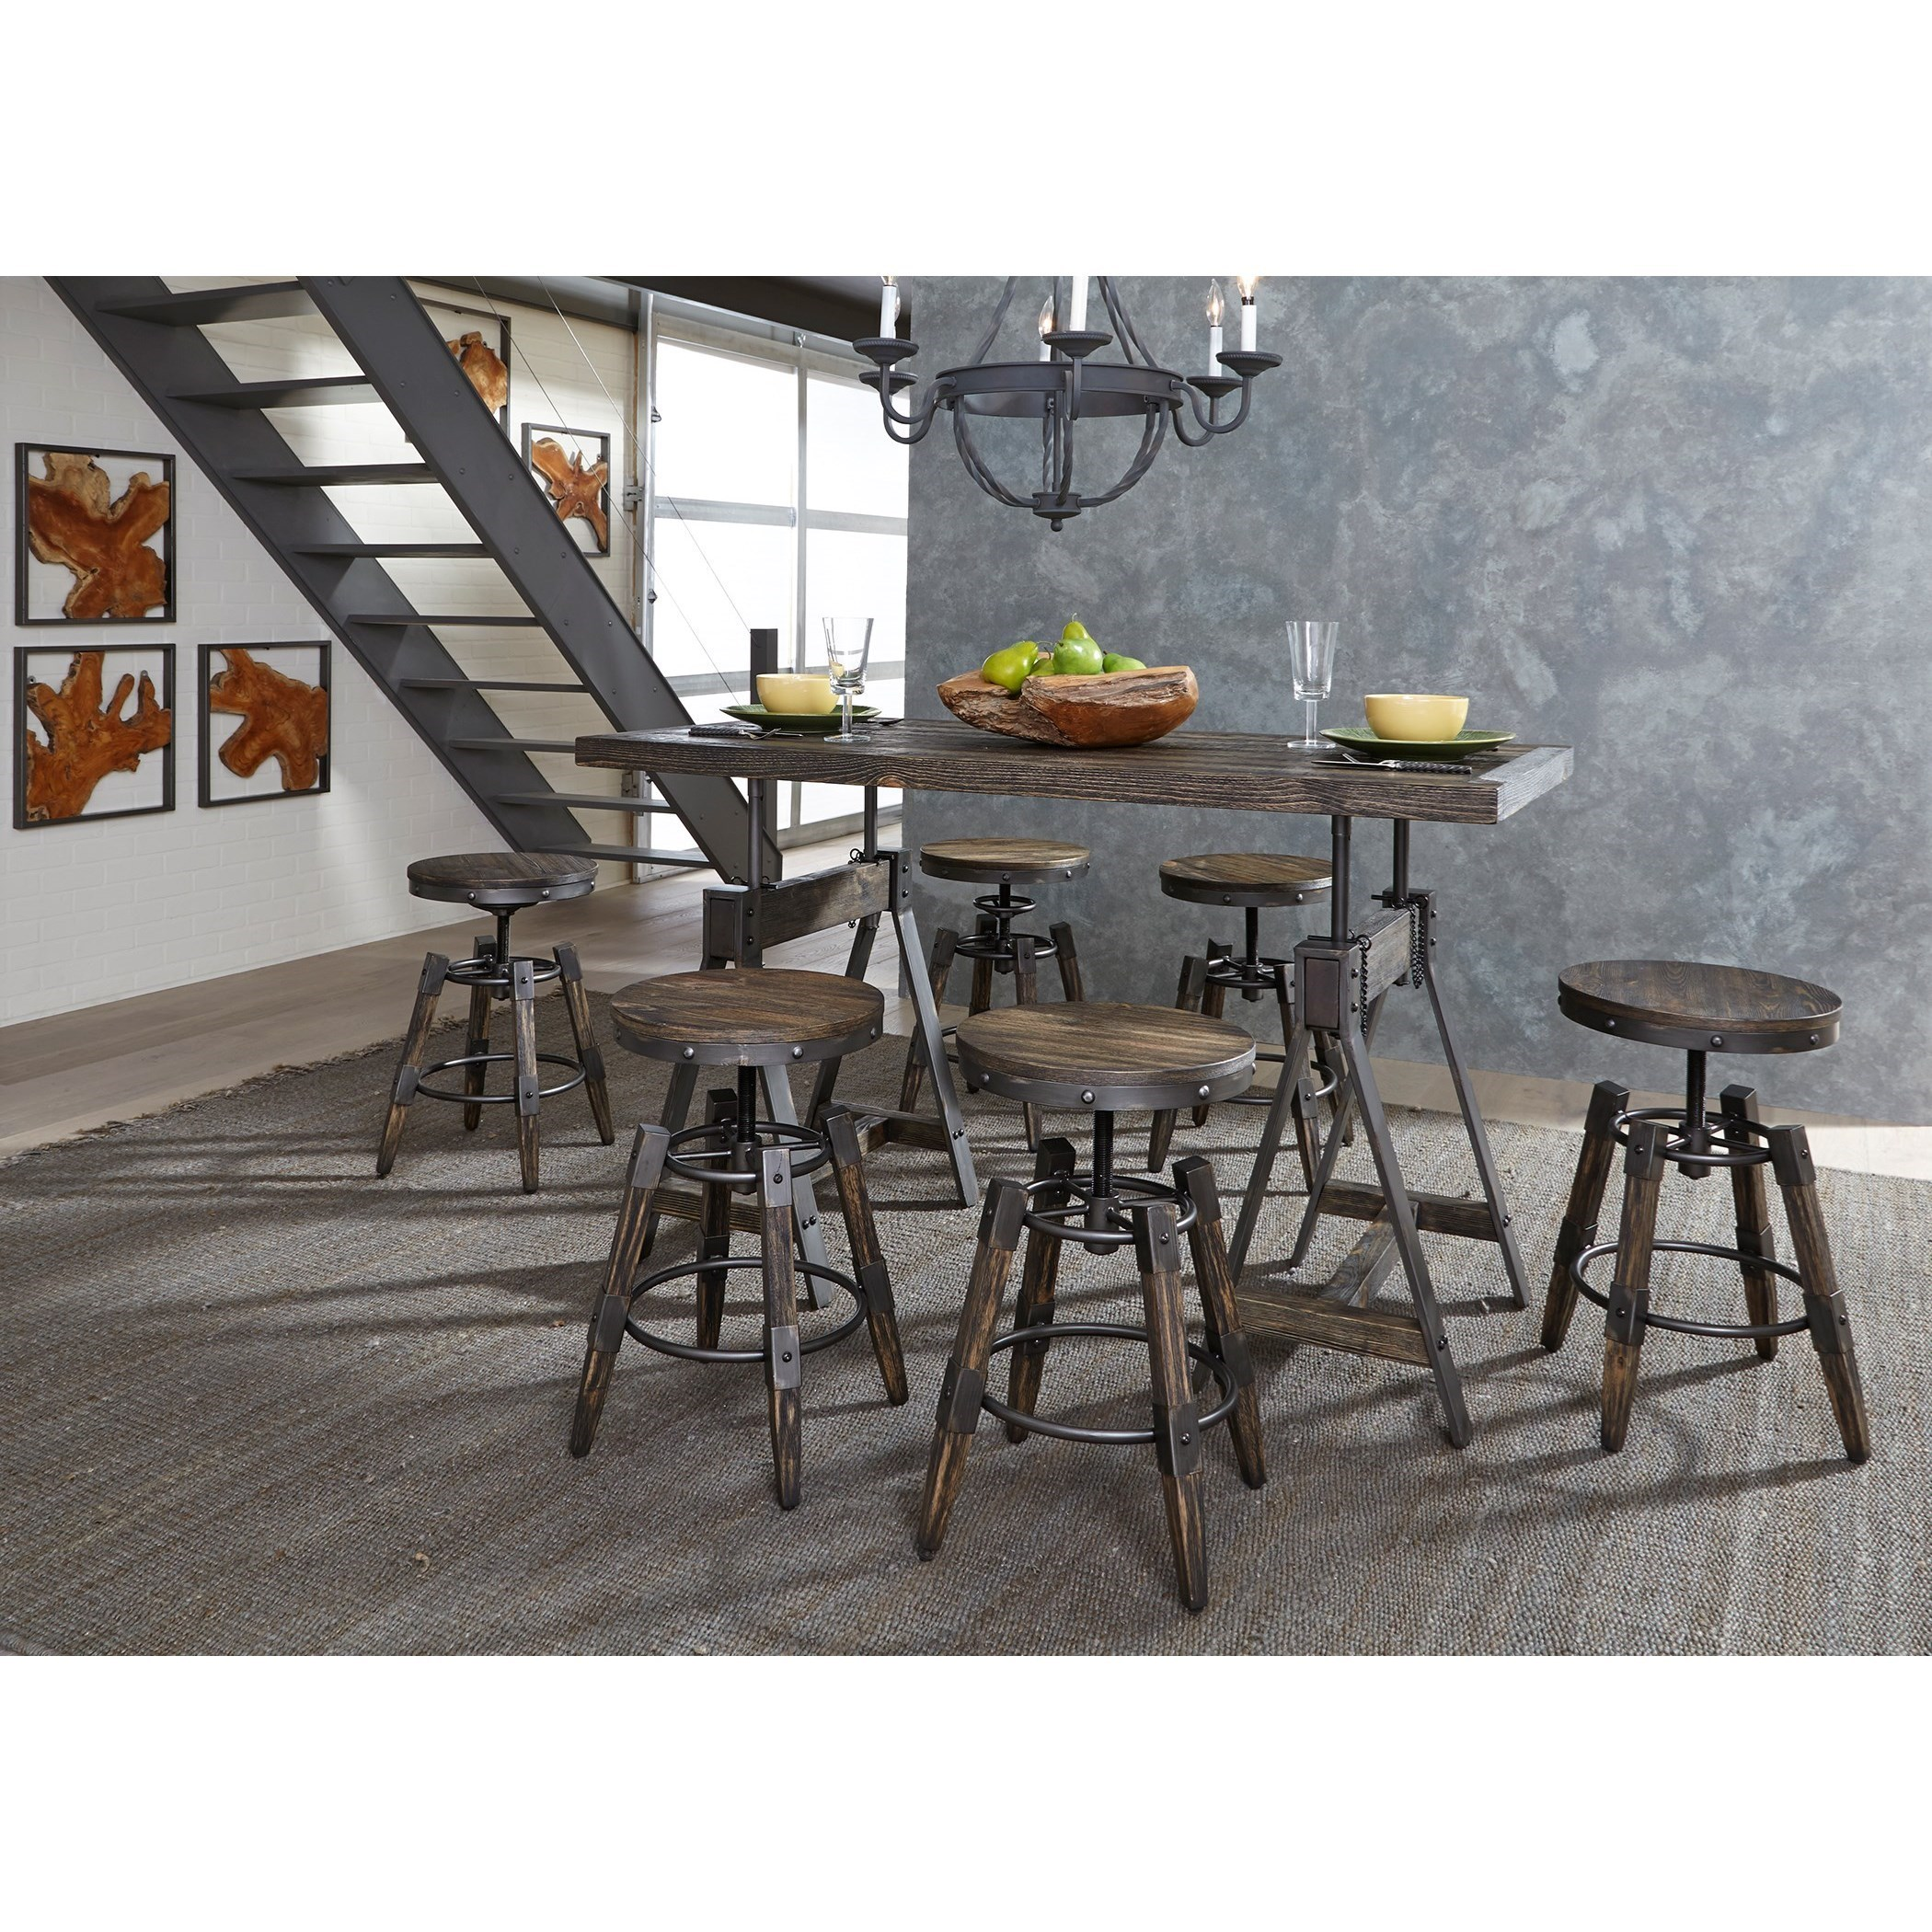 Merveilleux Liberty Furniture Pineville Industrial Adjustable Height Table And Stool Set